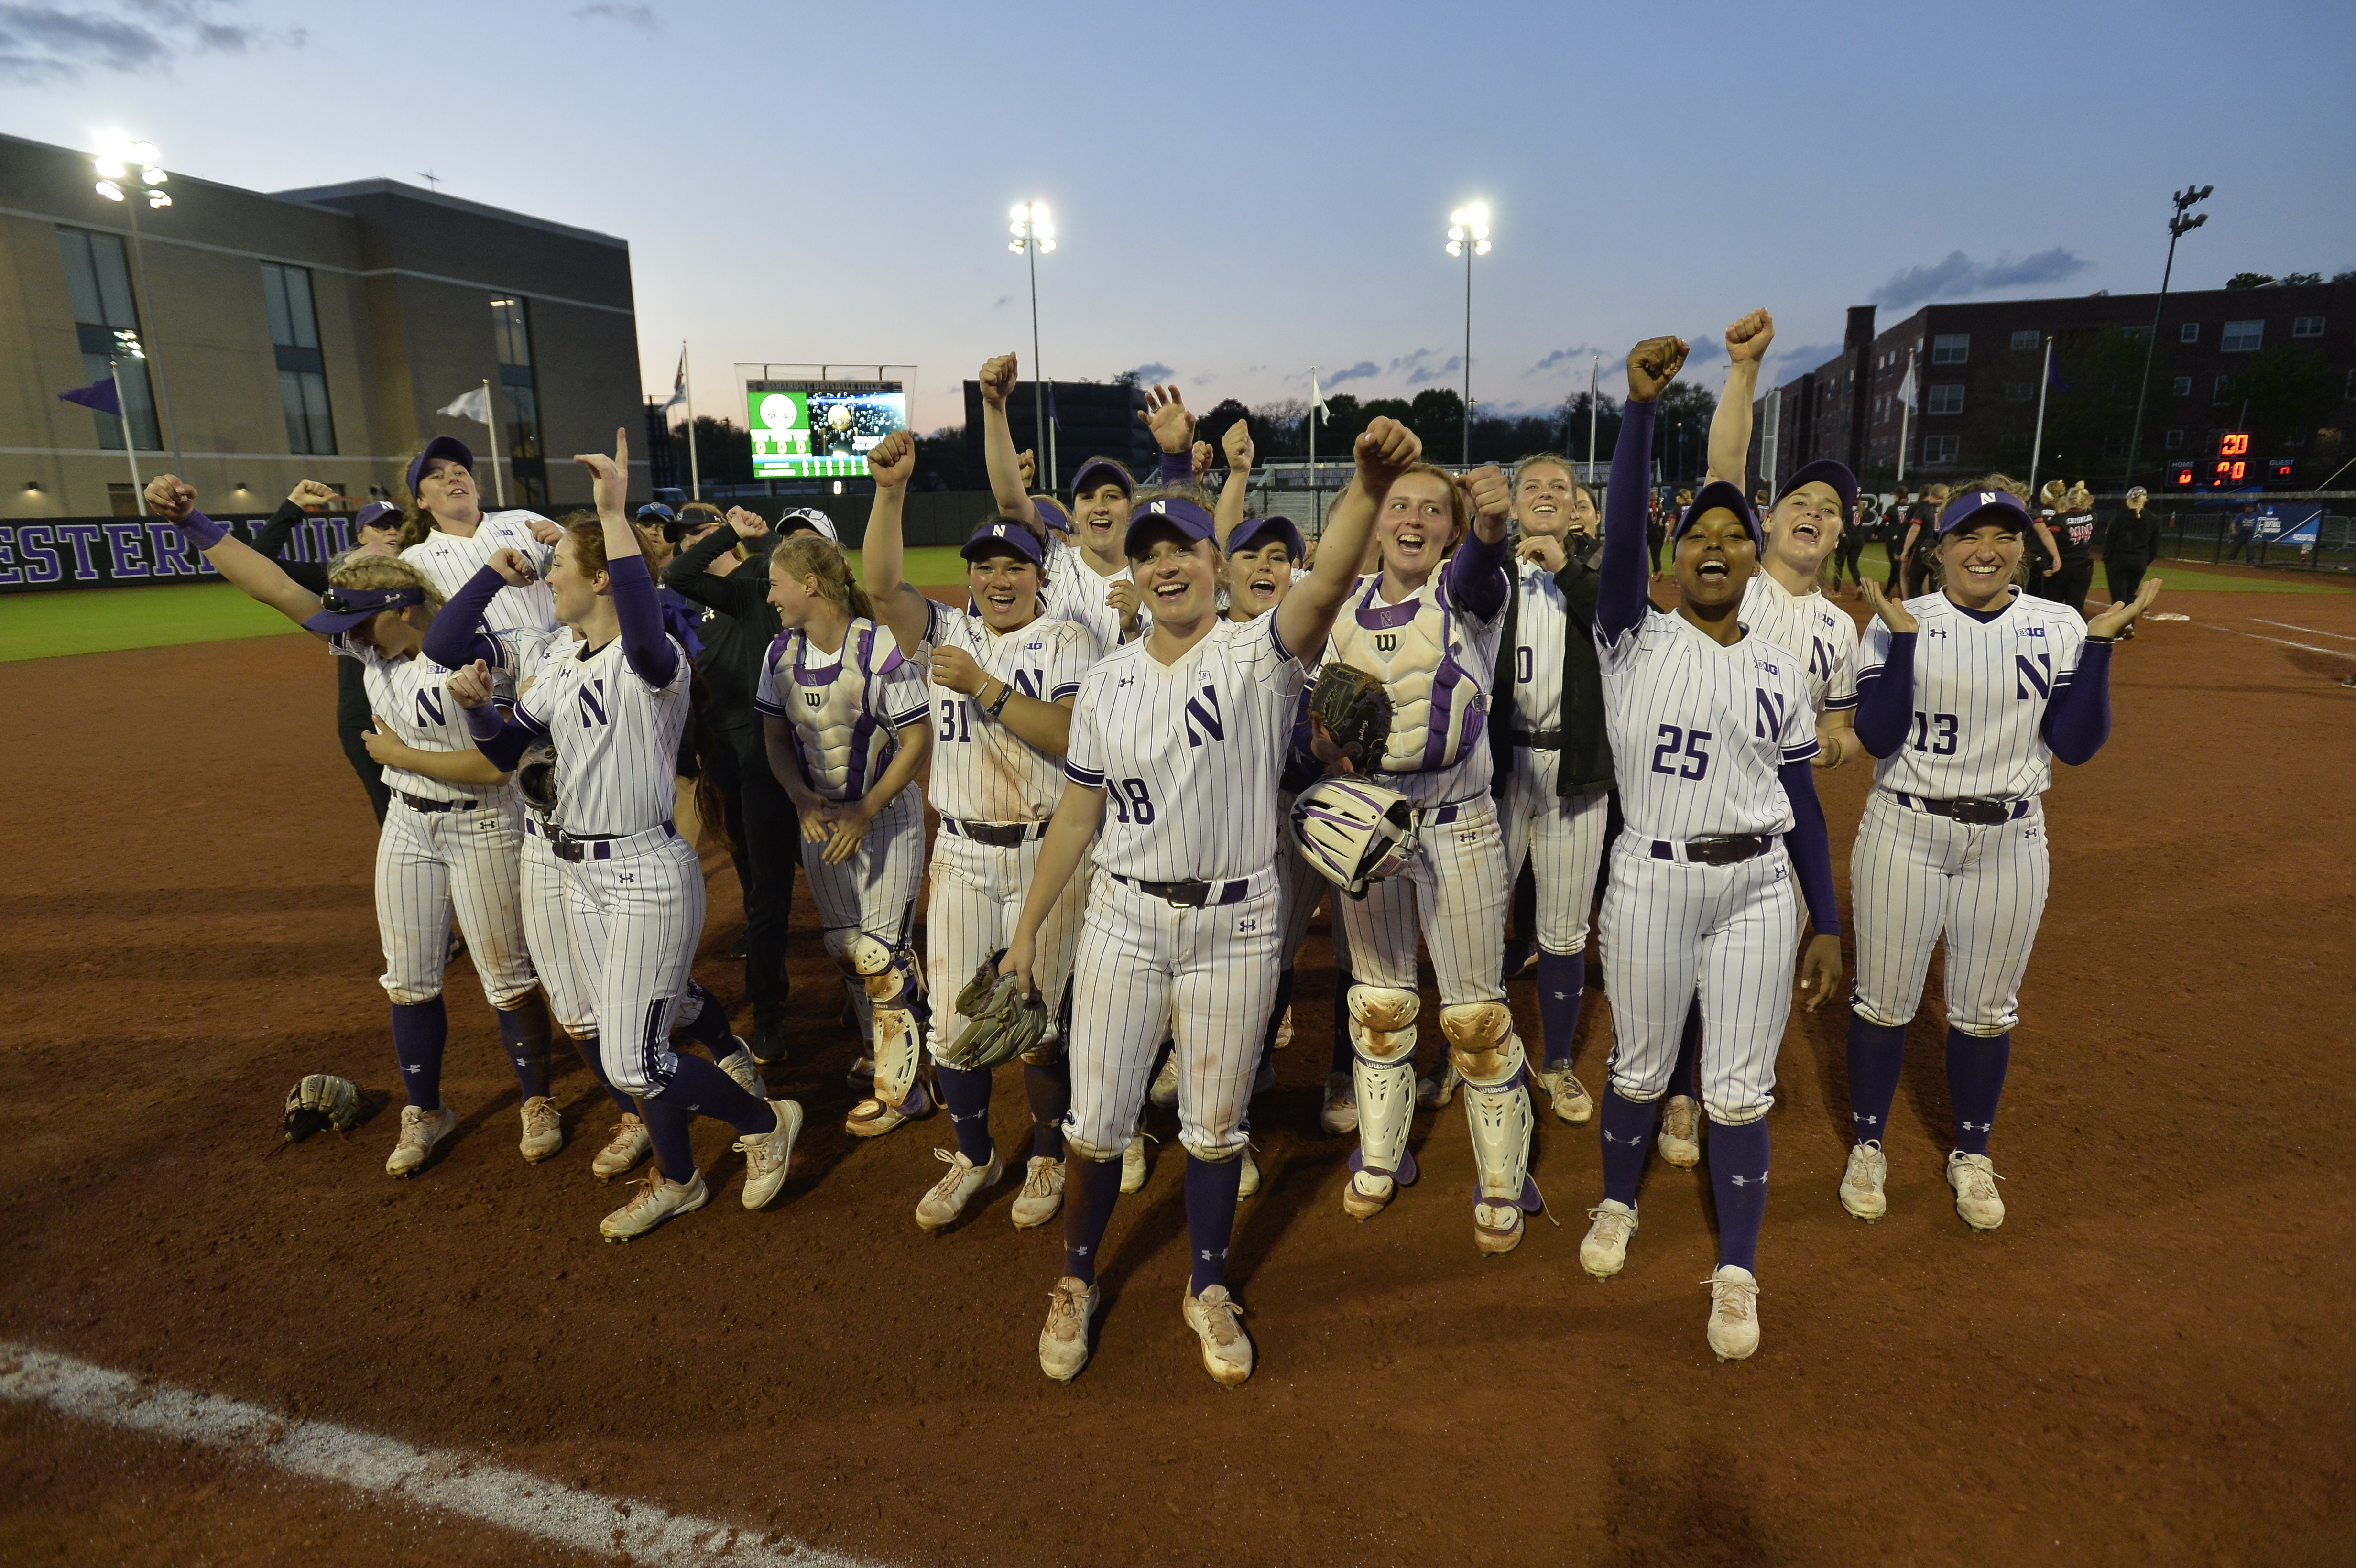 The Northwestern softball team celebrates its victory over the Louisville Cardinals to clinch its berth in the NCAA Super Regionals, Sunday, May 19, at Drysdale Field.